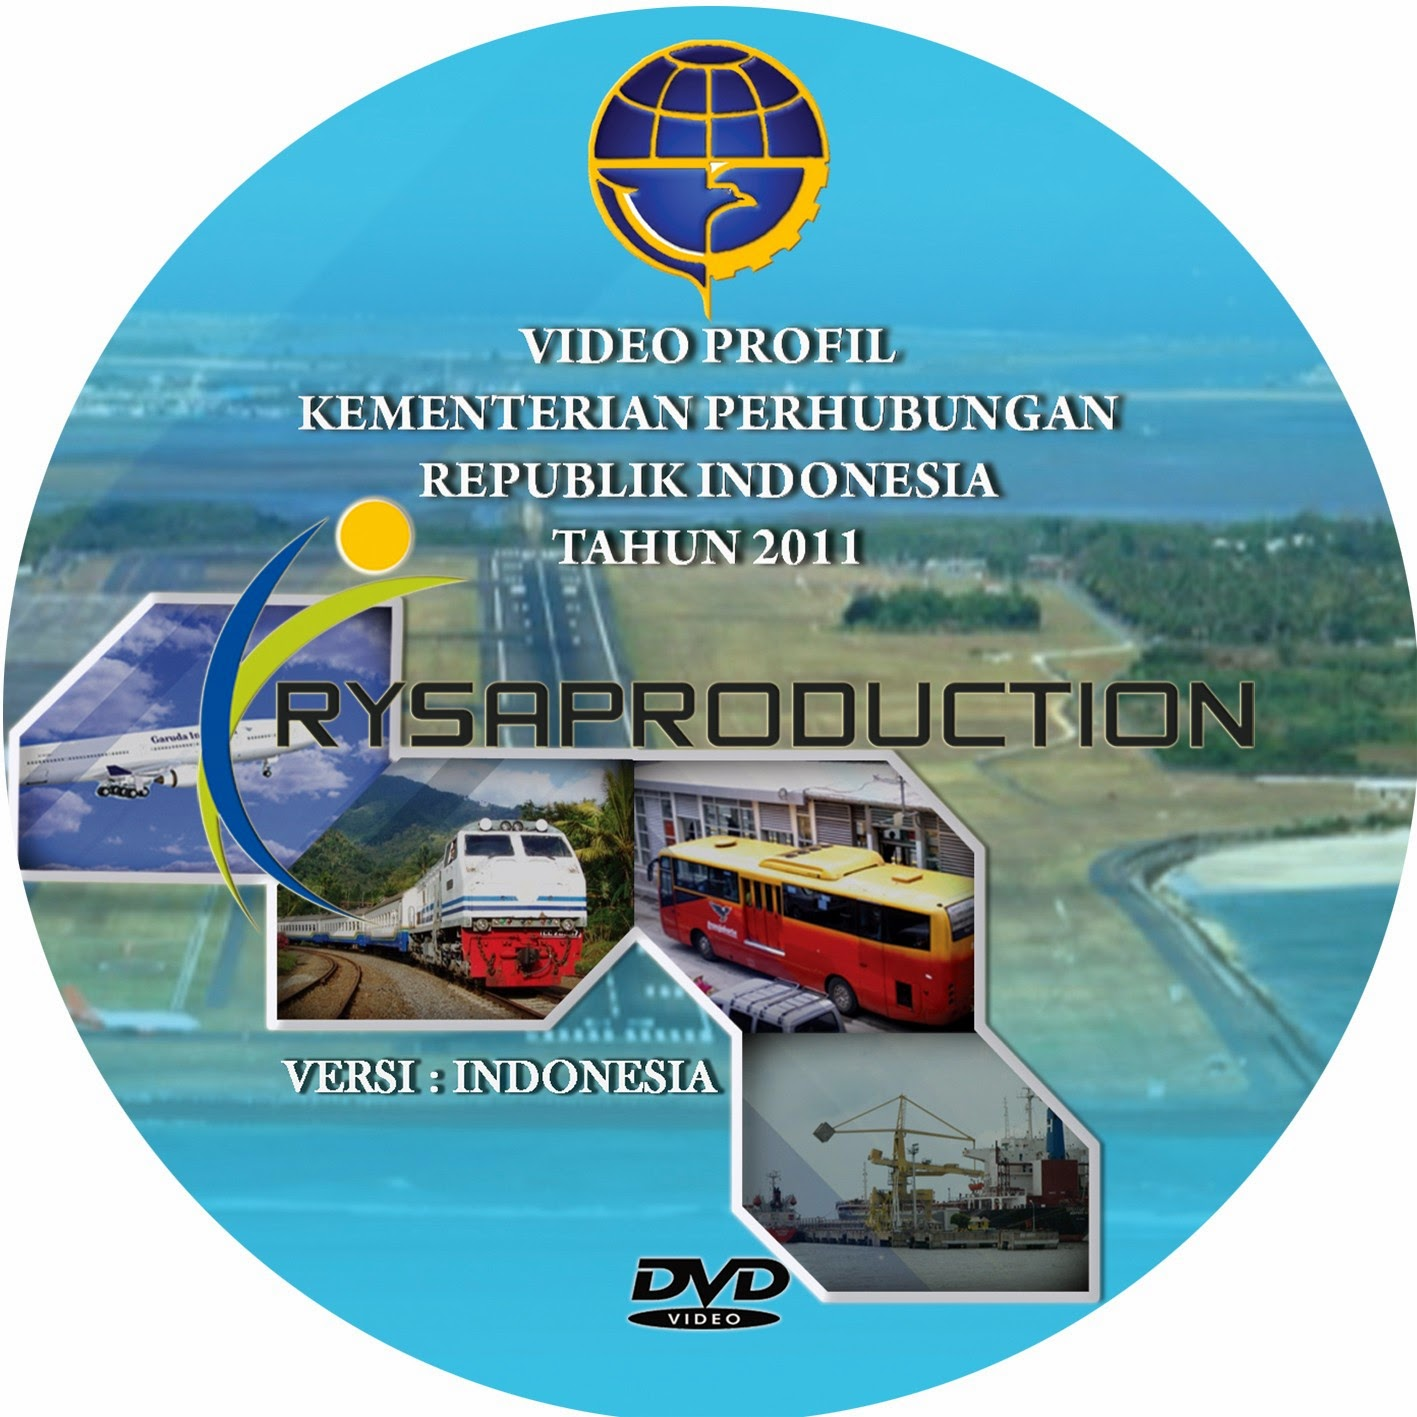 Video Profil Kementrian Perhubungan